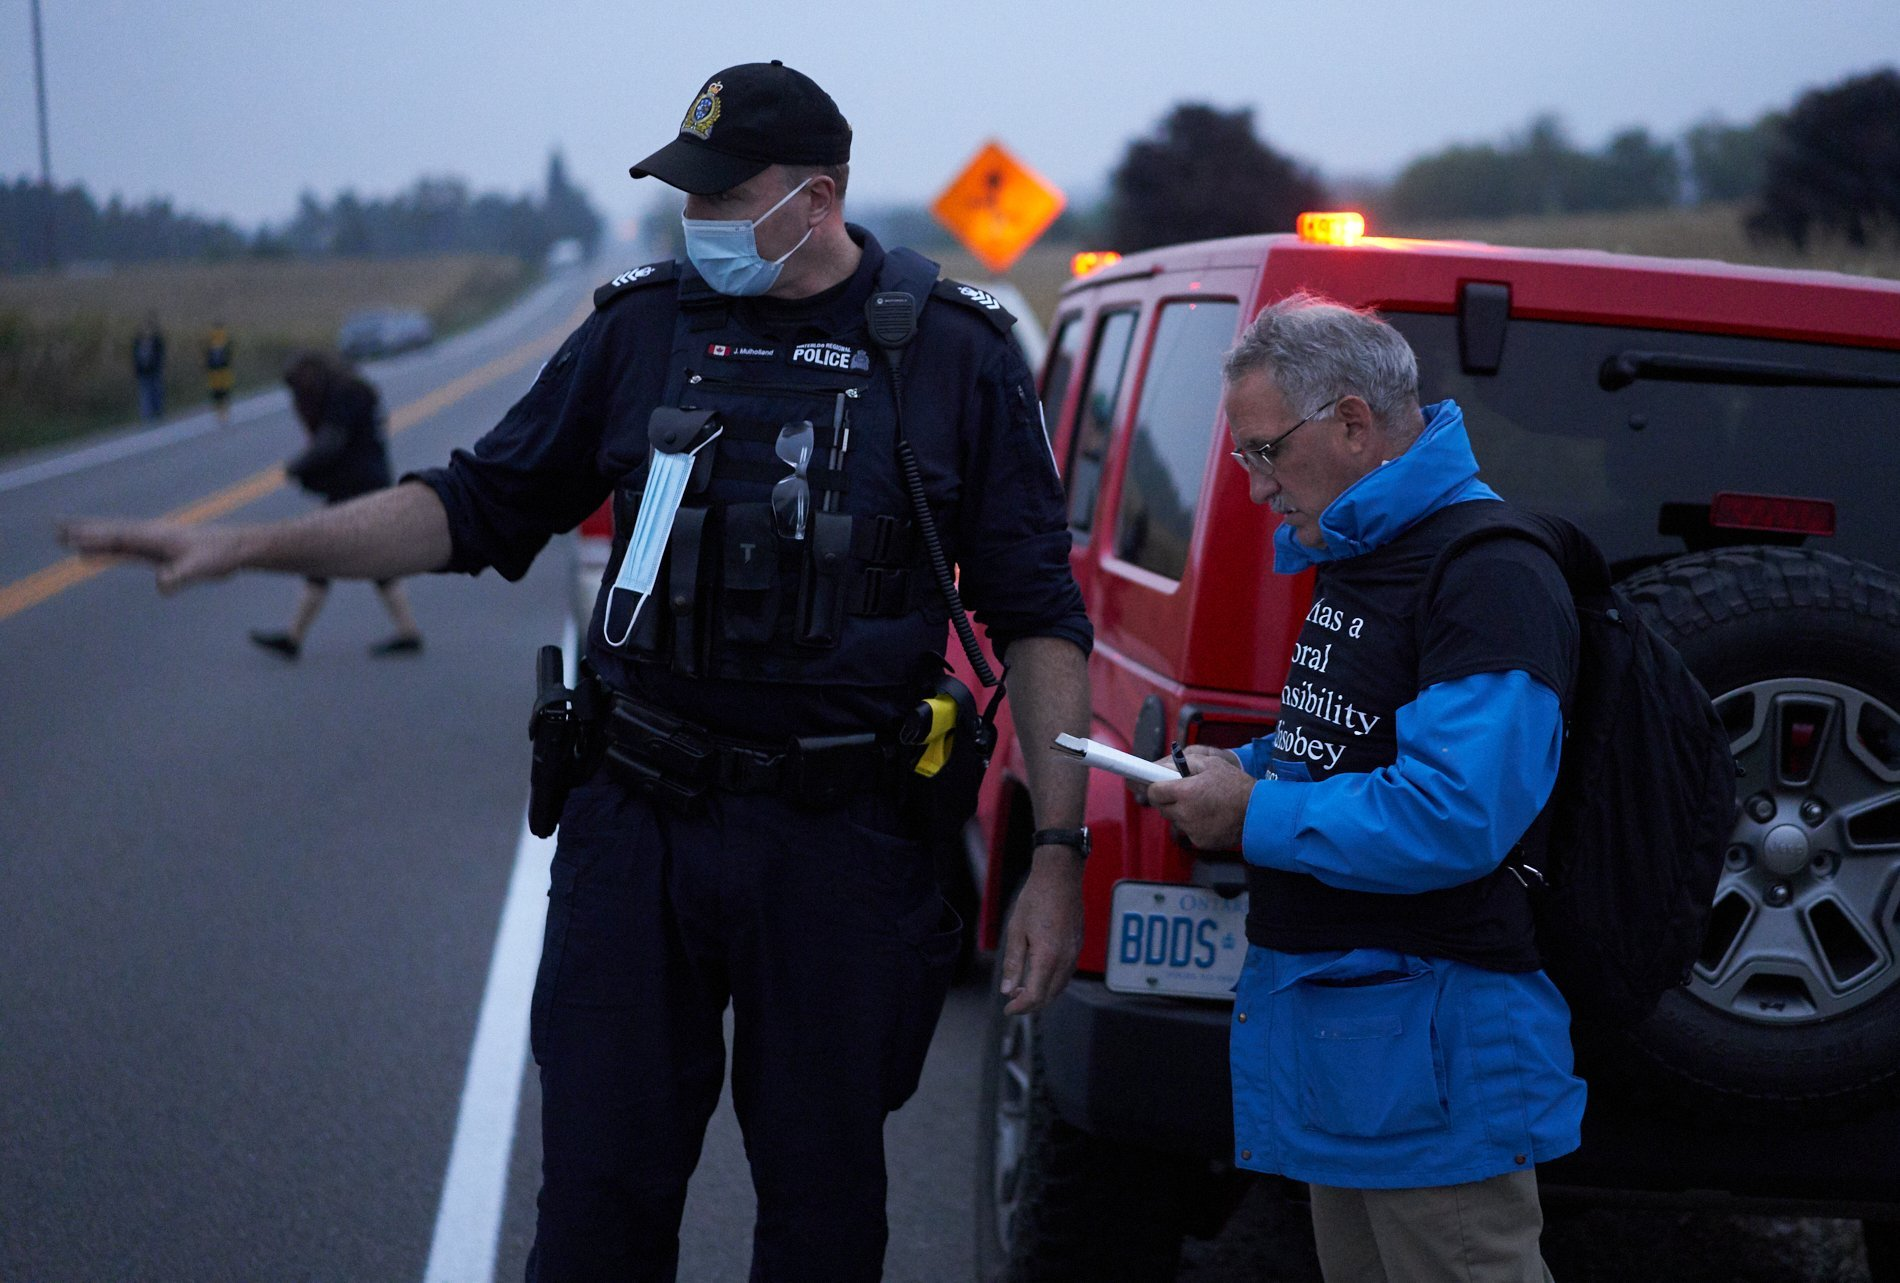 Dan Moskaluk (right) is a retired RCMP officer turned activist. He said he helps groups communicate with police while ensuring police behave the way they are supposed to. Here he is speaking with Staff Sergeant J. Mullholland about putting tents away from the road.